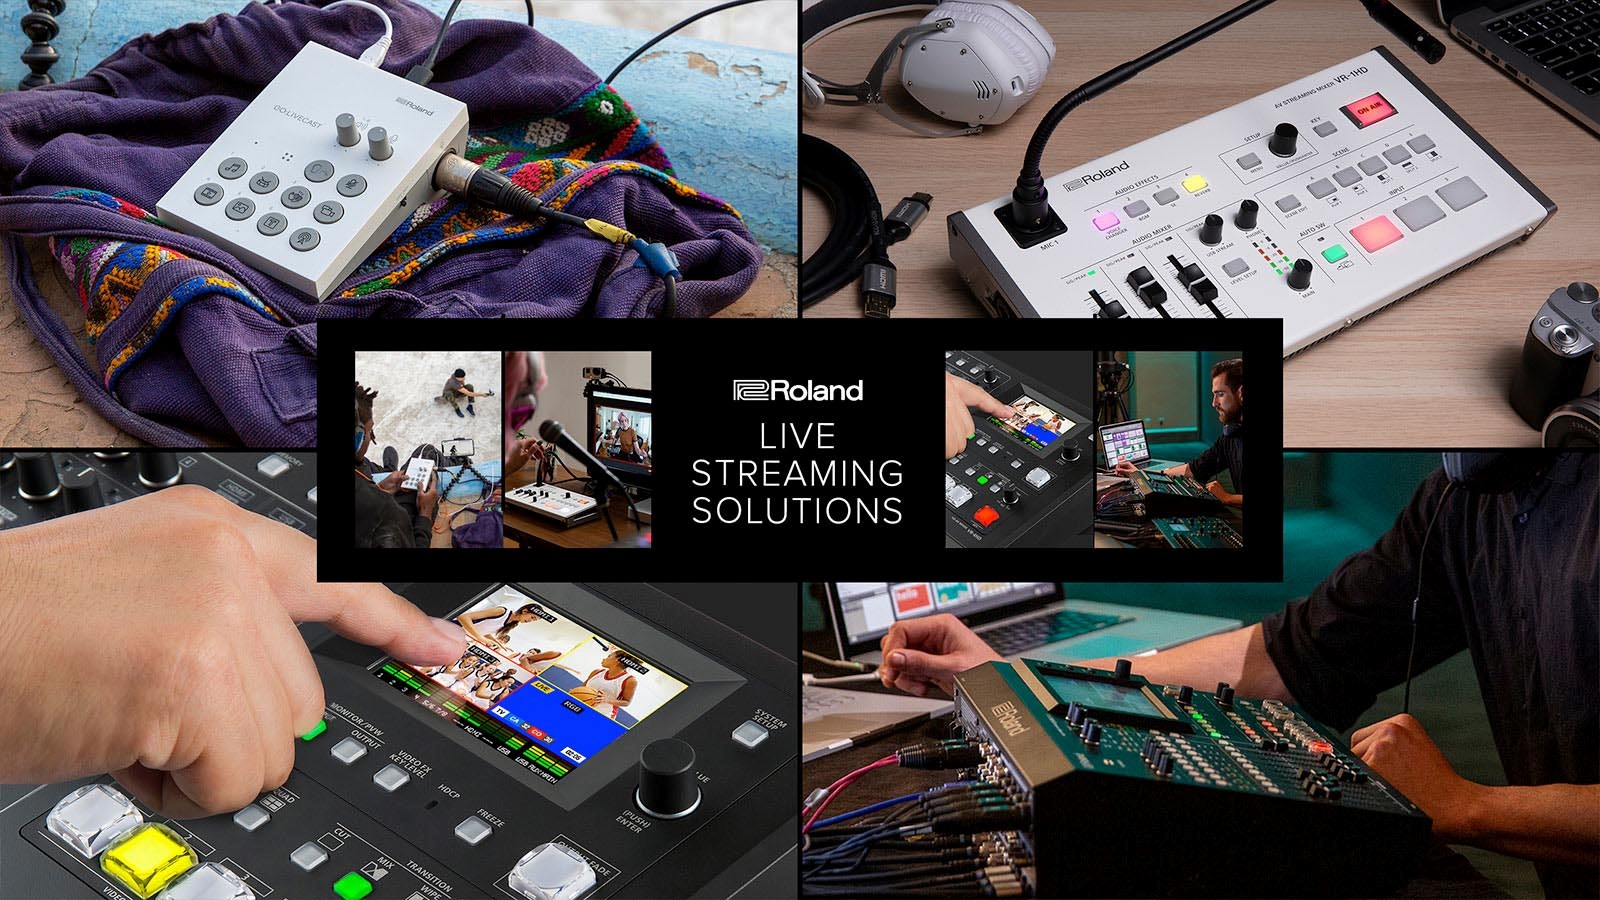 Roland – WANT TO GET ONLINE AND START LIVESTREAMING?